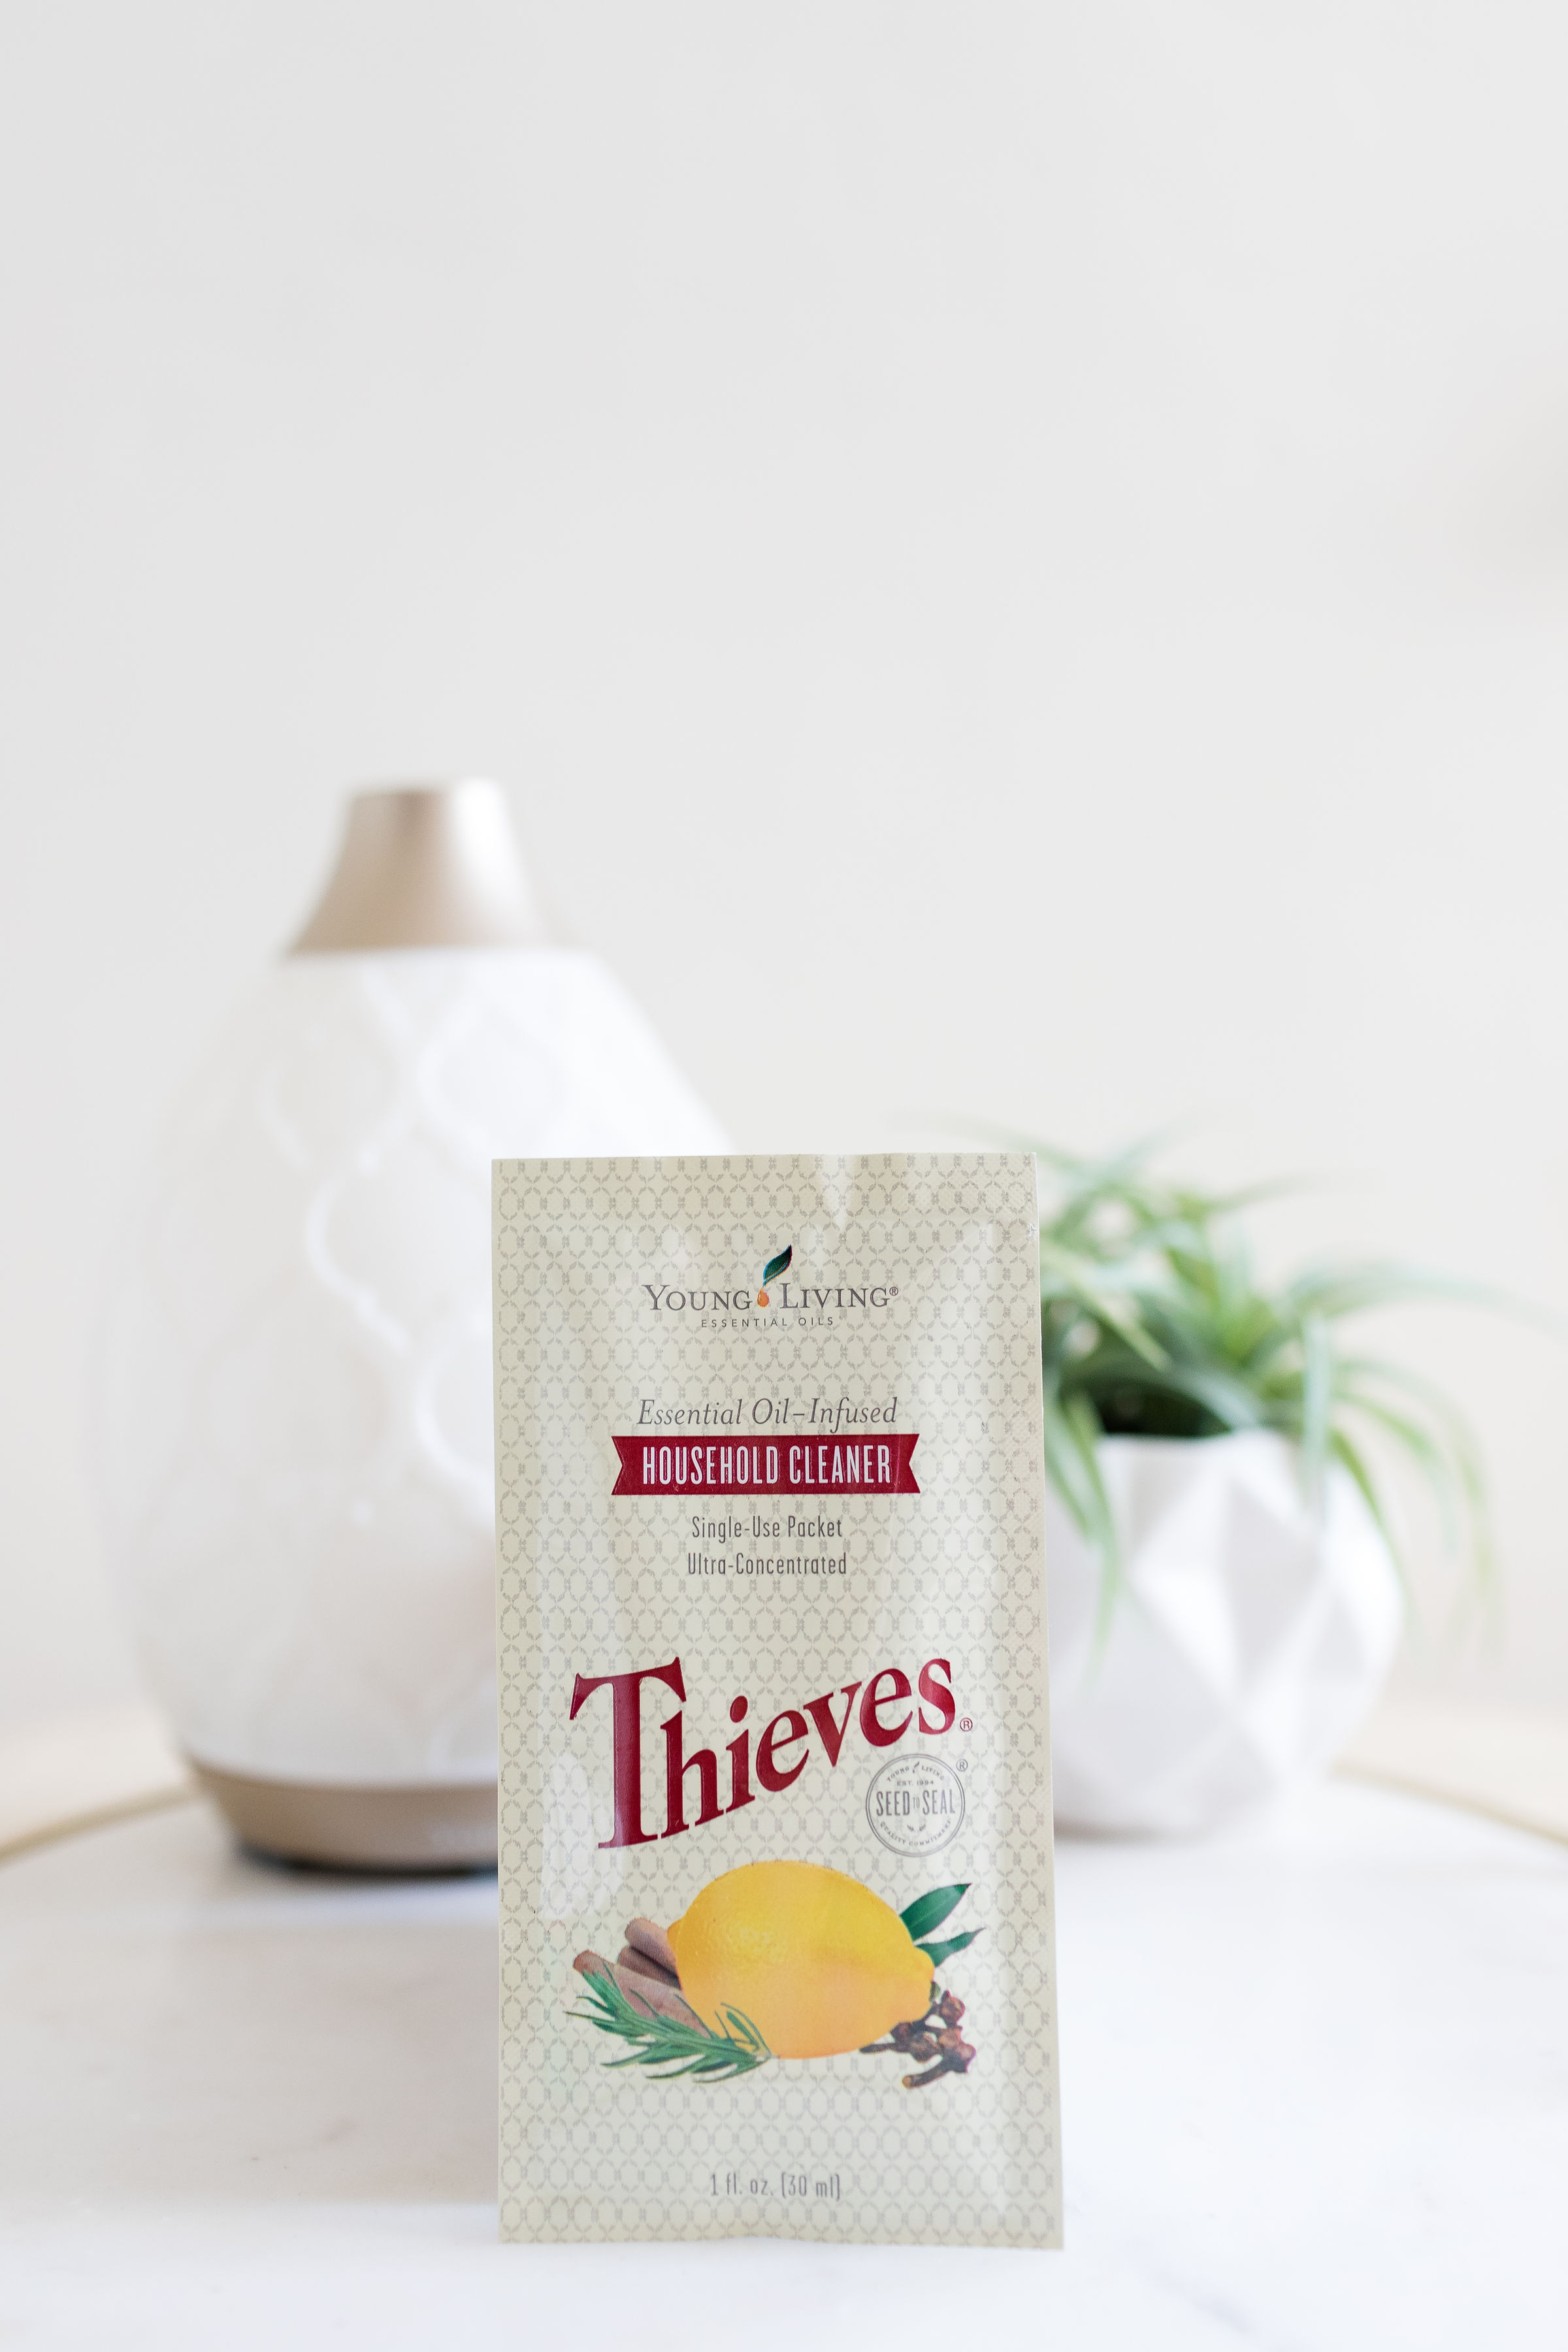 thieves cleaner - + the best plant-based, safe cleaner on the market!+ 100% free of any toxic chemicals and safe for your kids+ Smells like the holidays+ the only cleaner you need…safely cleans all surfaces.+ approx price per 16 oz bottle is $1.30 per bottle! winner.+ You'll pour this packet into a 16 oz spray bottle, top with water, and that's it!